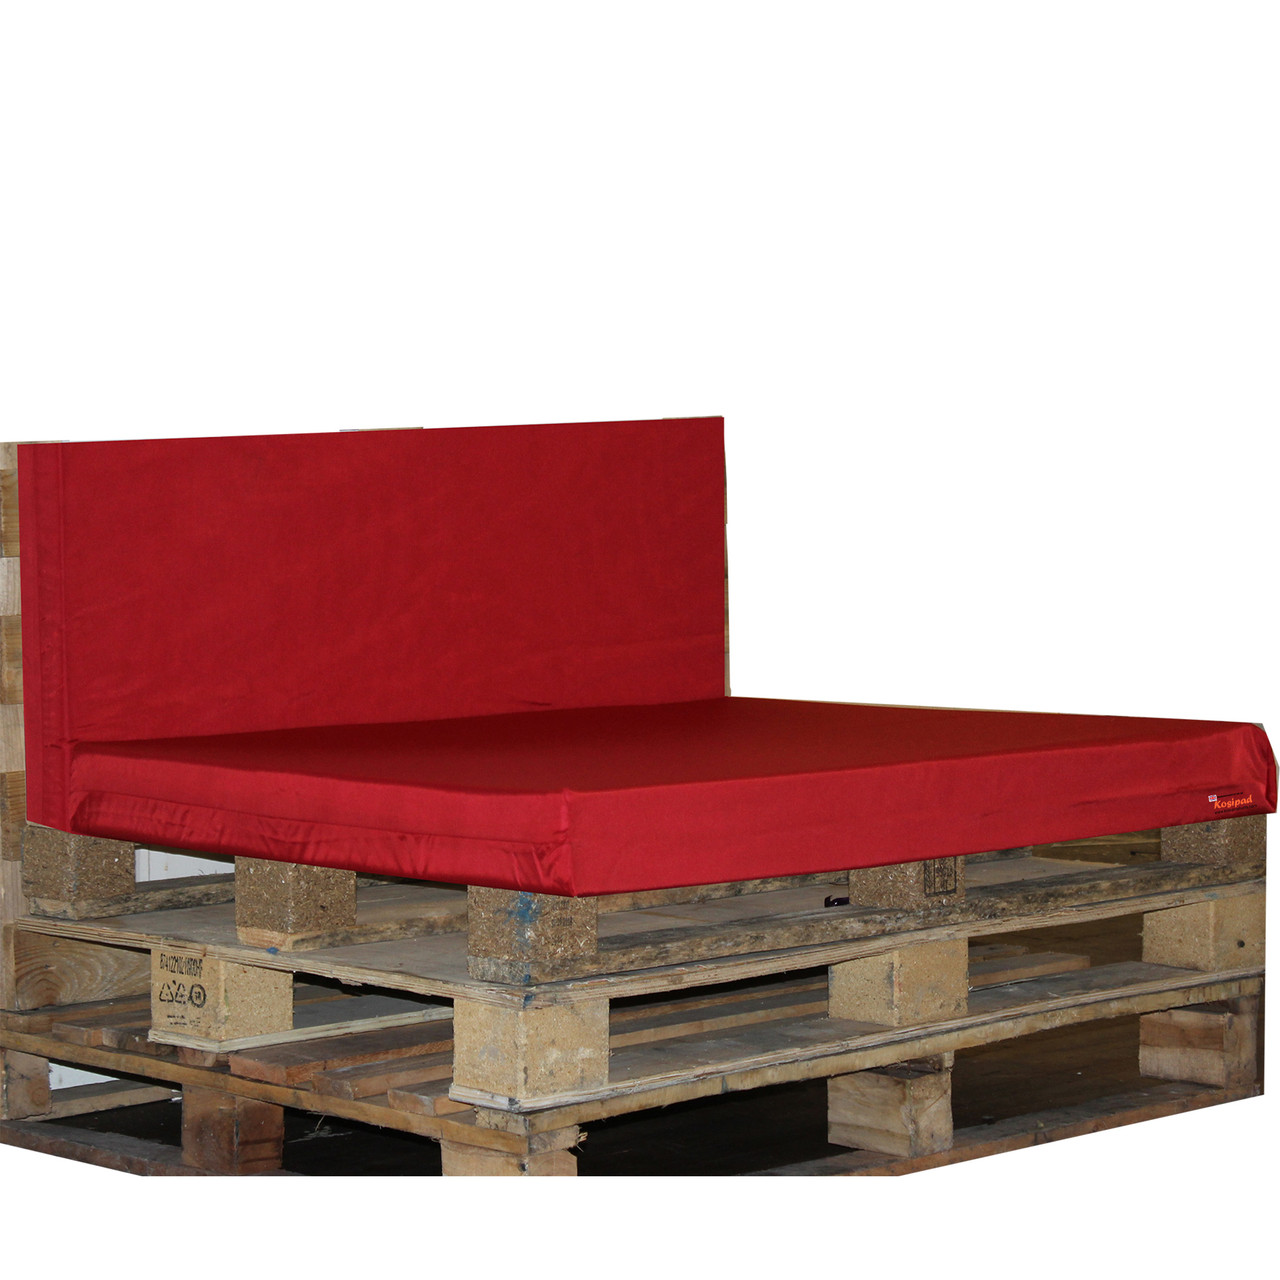 Kosipad Red foam cushion pads seating Cushions for Euro Pallets